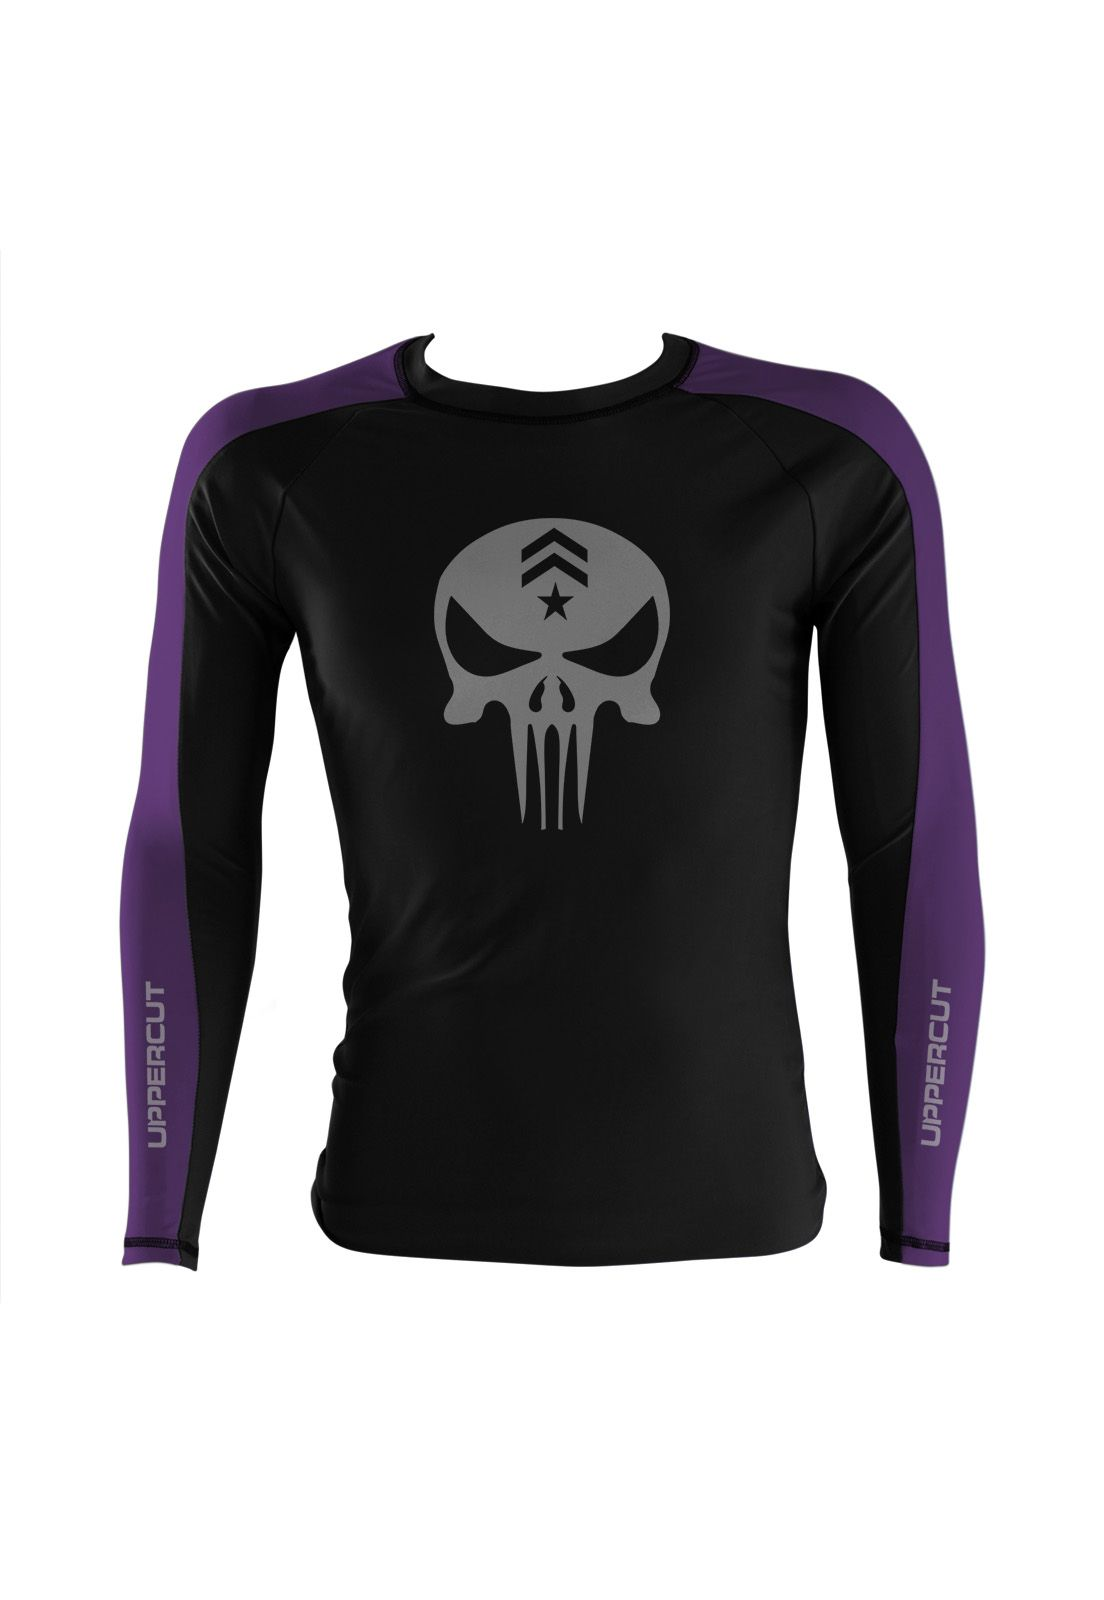 Camisa Rash Guard Justiceiro War R-3 - Preto/Roxa - Uppercut  - Loja do Competidor